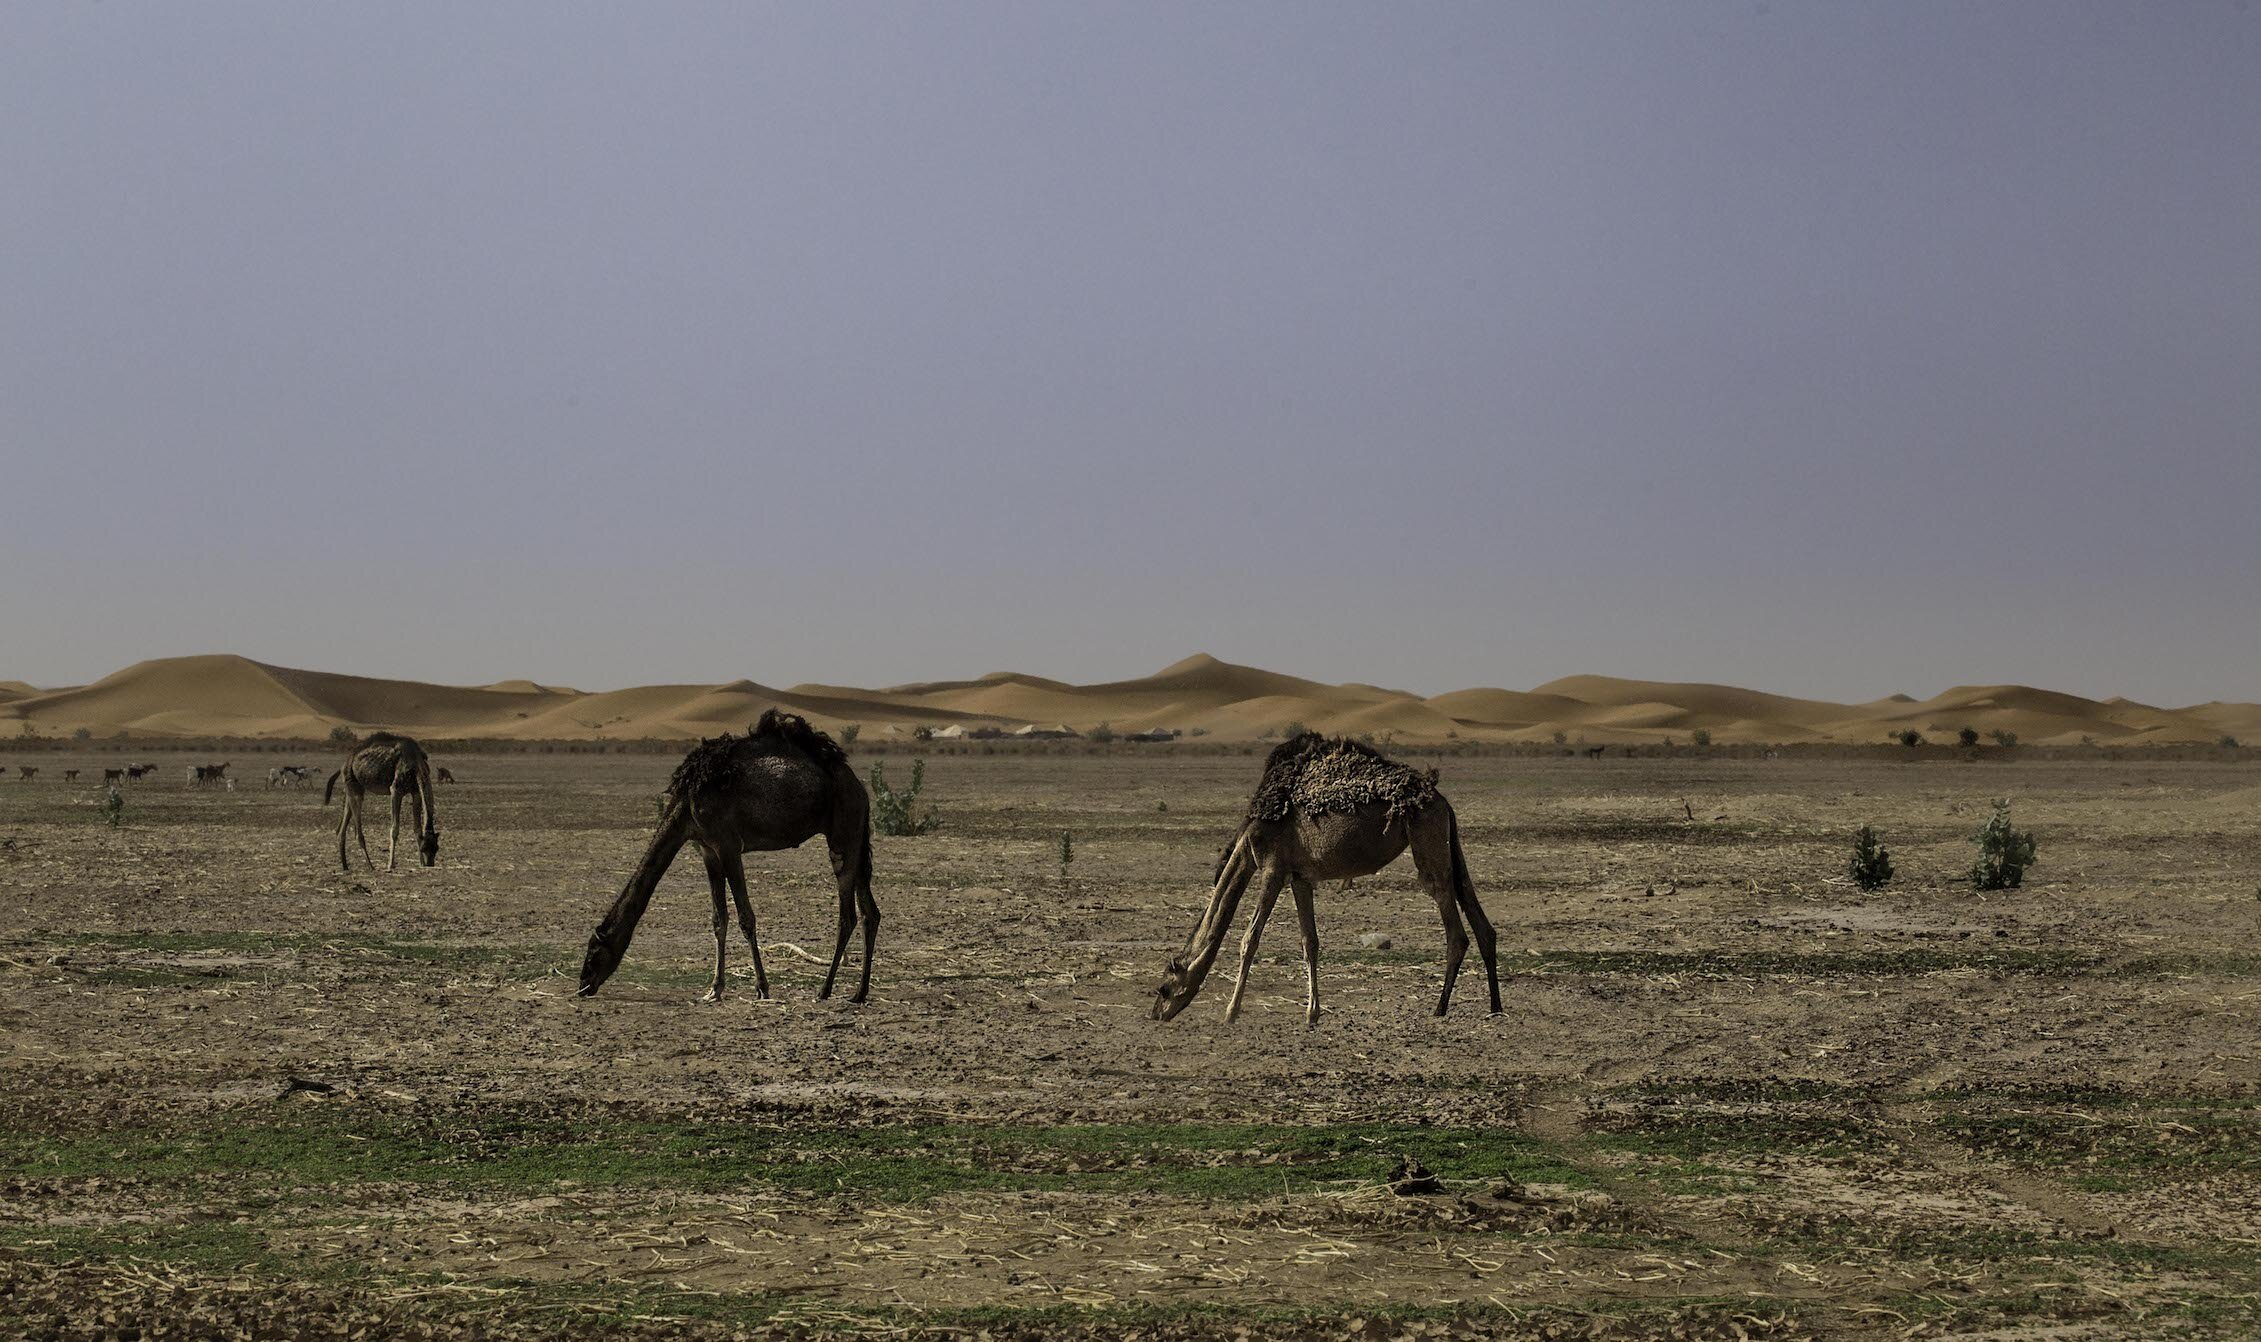 Camels Roam the land while we make our way out of the Sand-Dunes by food getting closer to the Nomadic Family.